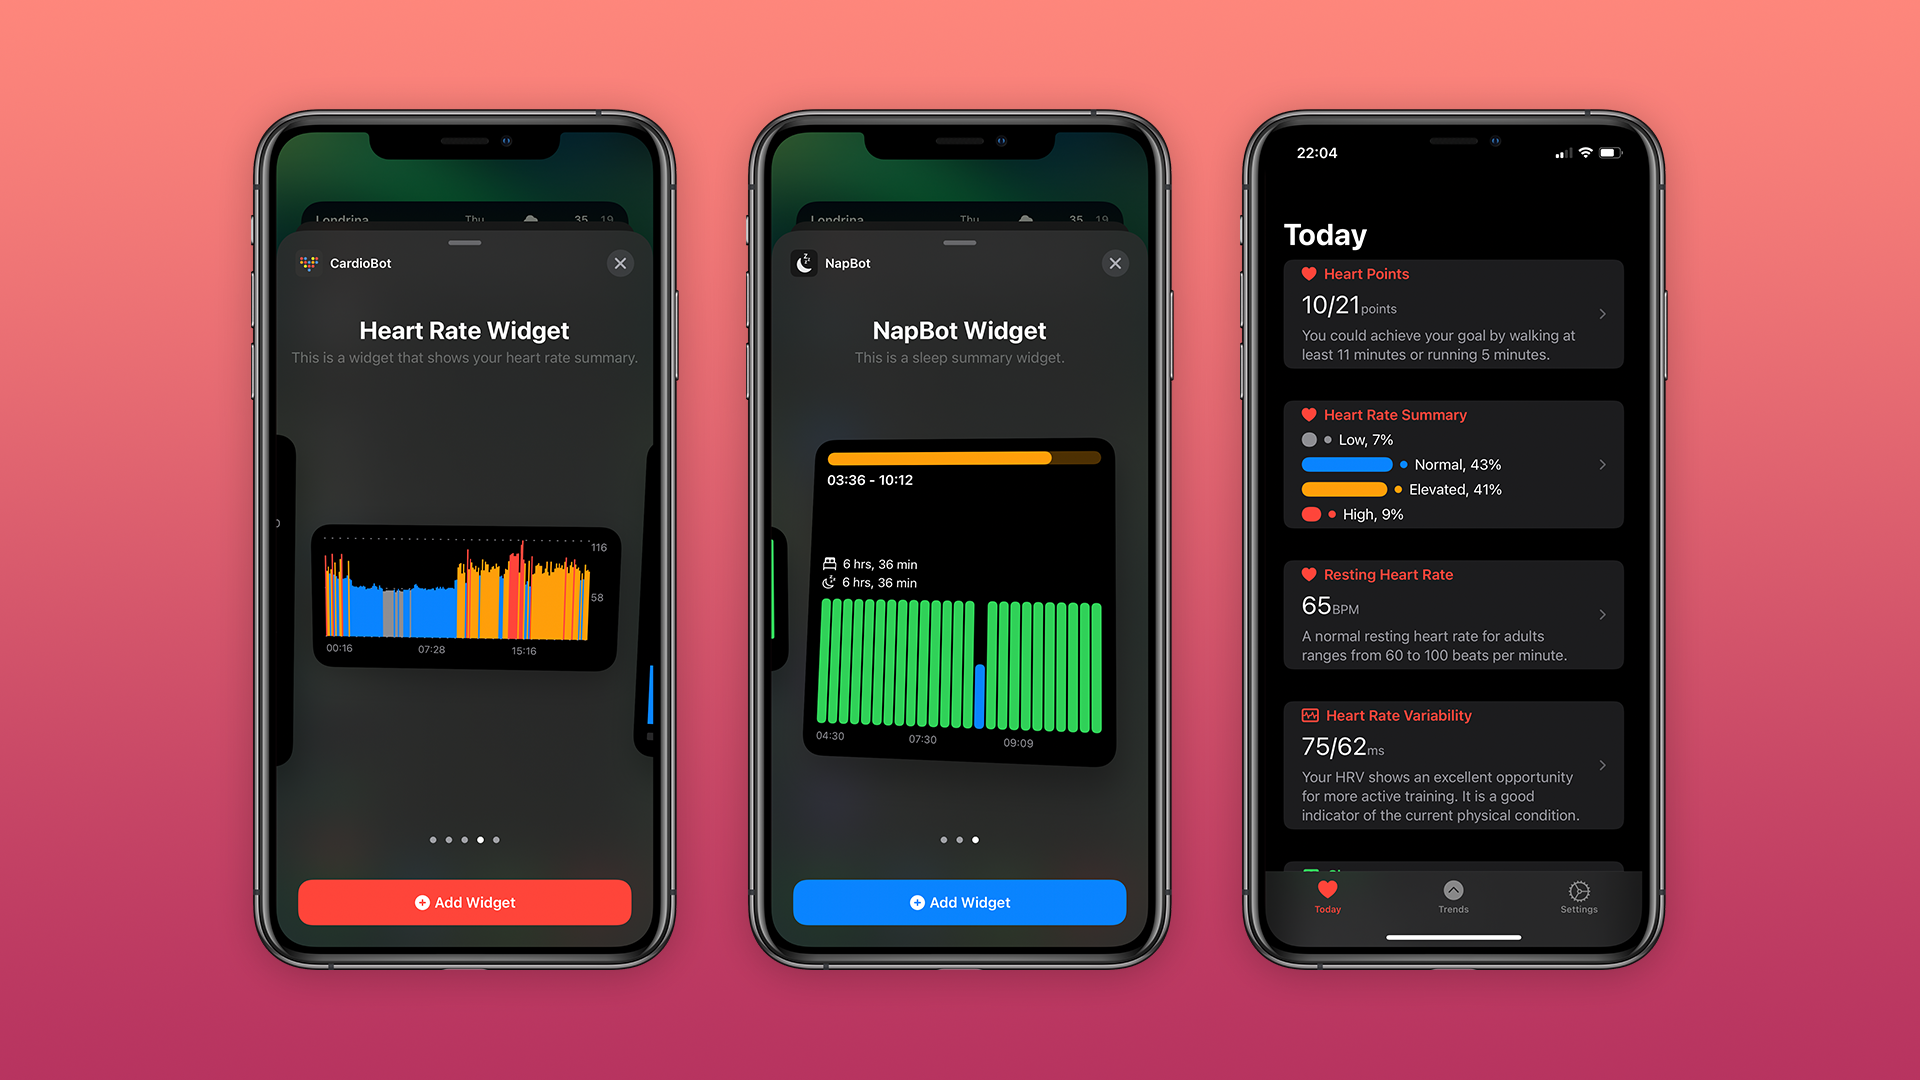 photo of CardioBot and NapBot apps updated with redesigned interface, iOS 14 widgets, more image